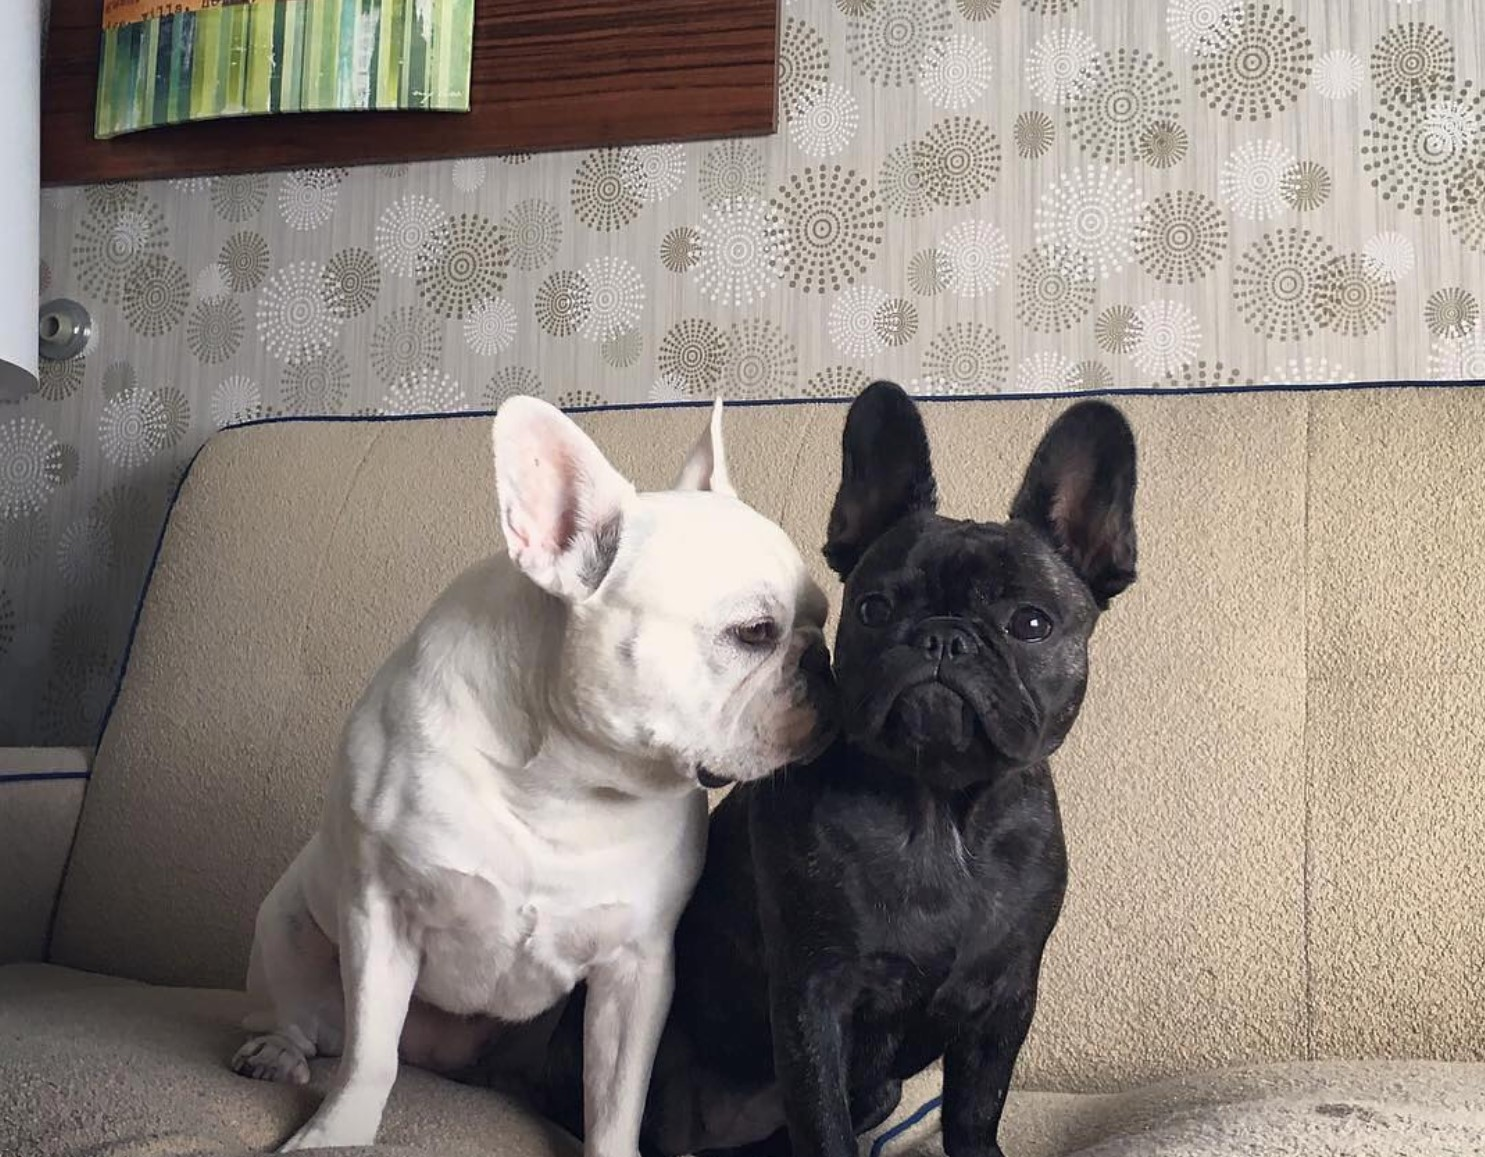 This Hotel Lets Guests Foster Dogs During Their Stay And They Can Even Adopt Them Afterward